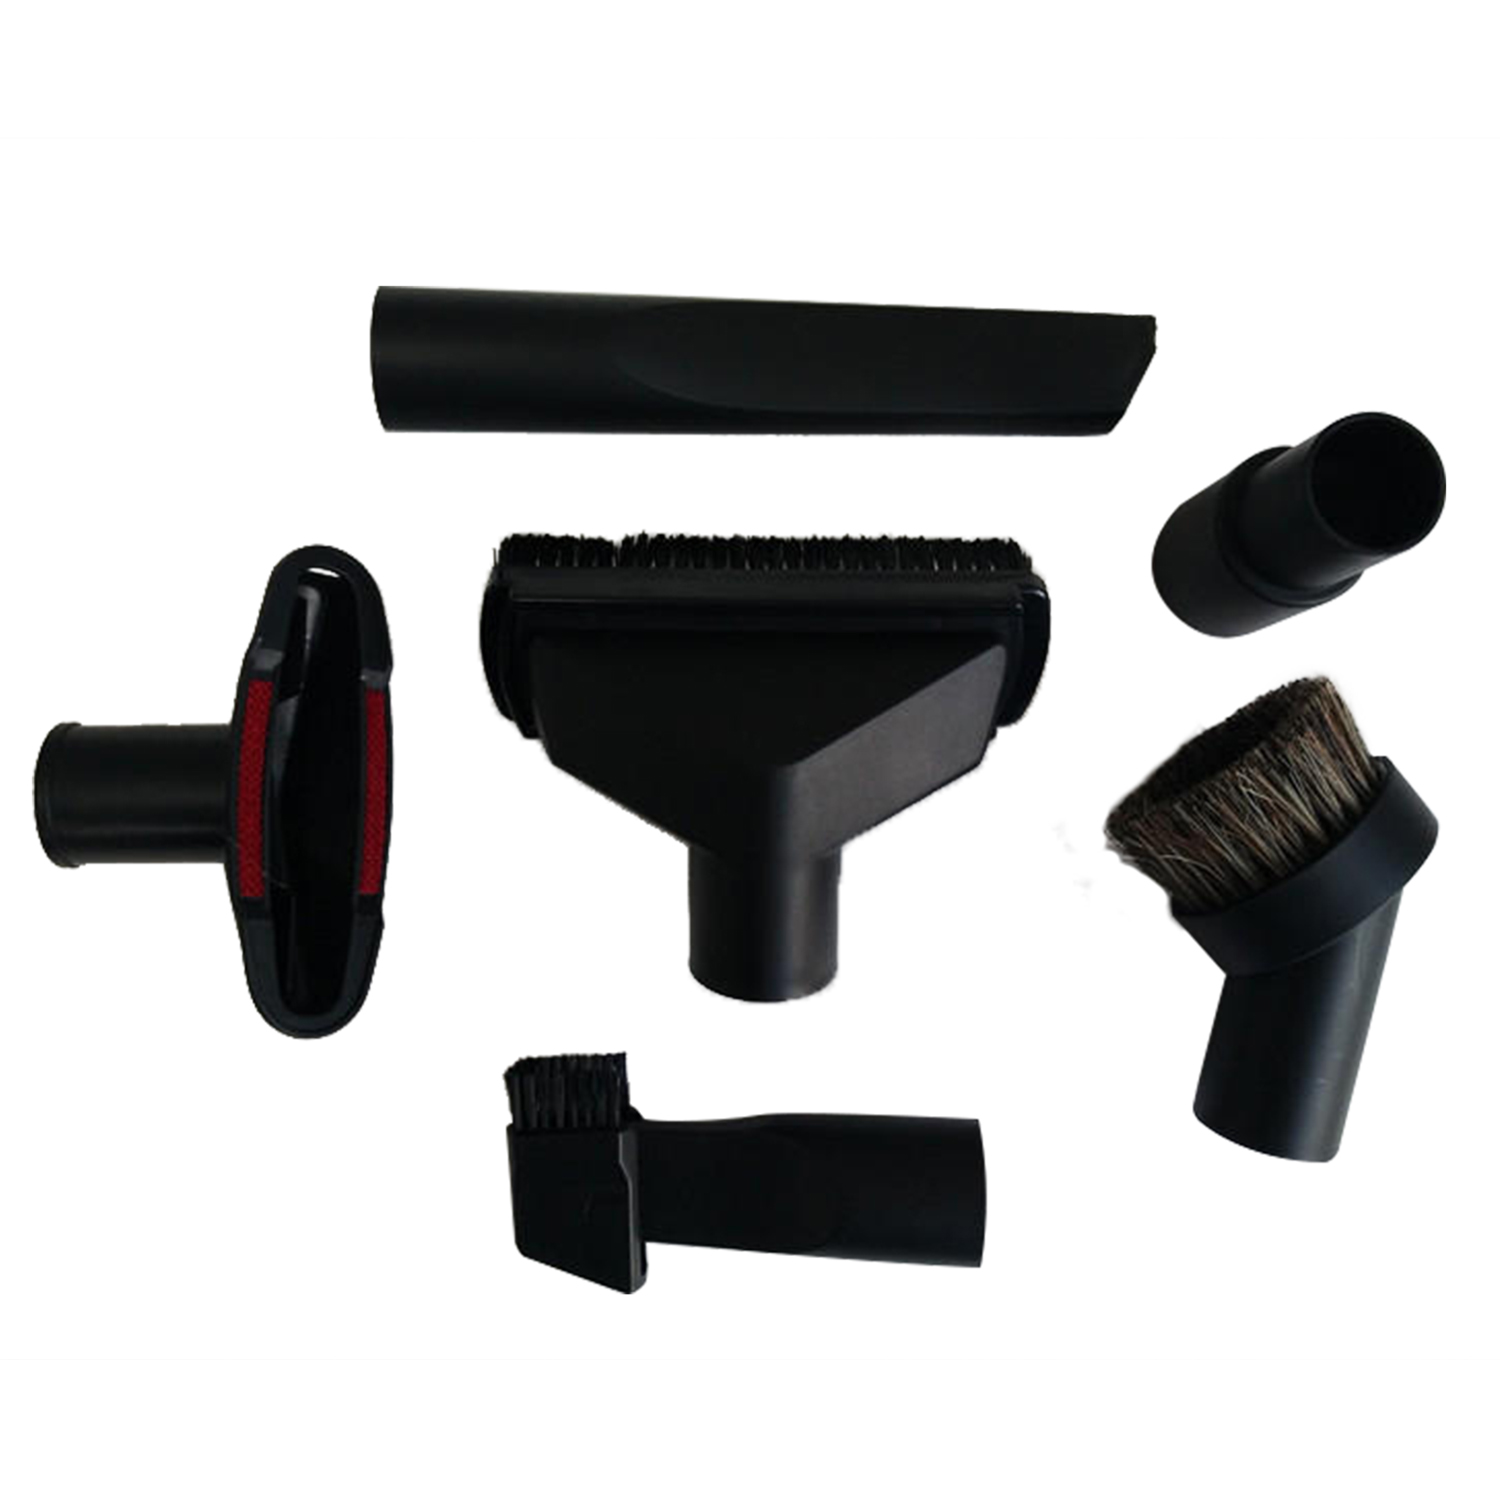 HOT GCZW-Universal Vacuum Cleaner Accessories Cleaning Kit Brush Nozzle Crevice Tool for 32mm& 35mm Standard Hose 6pcs